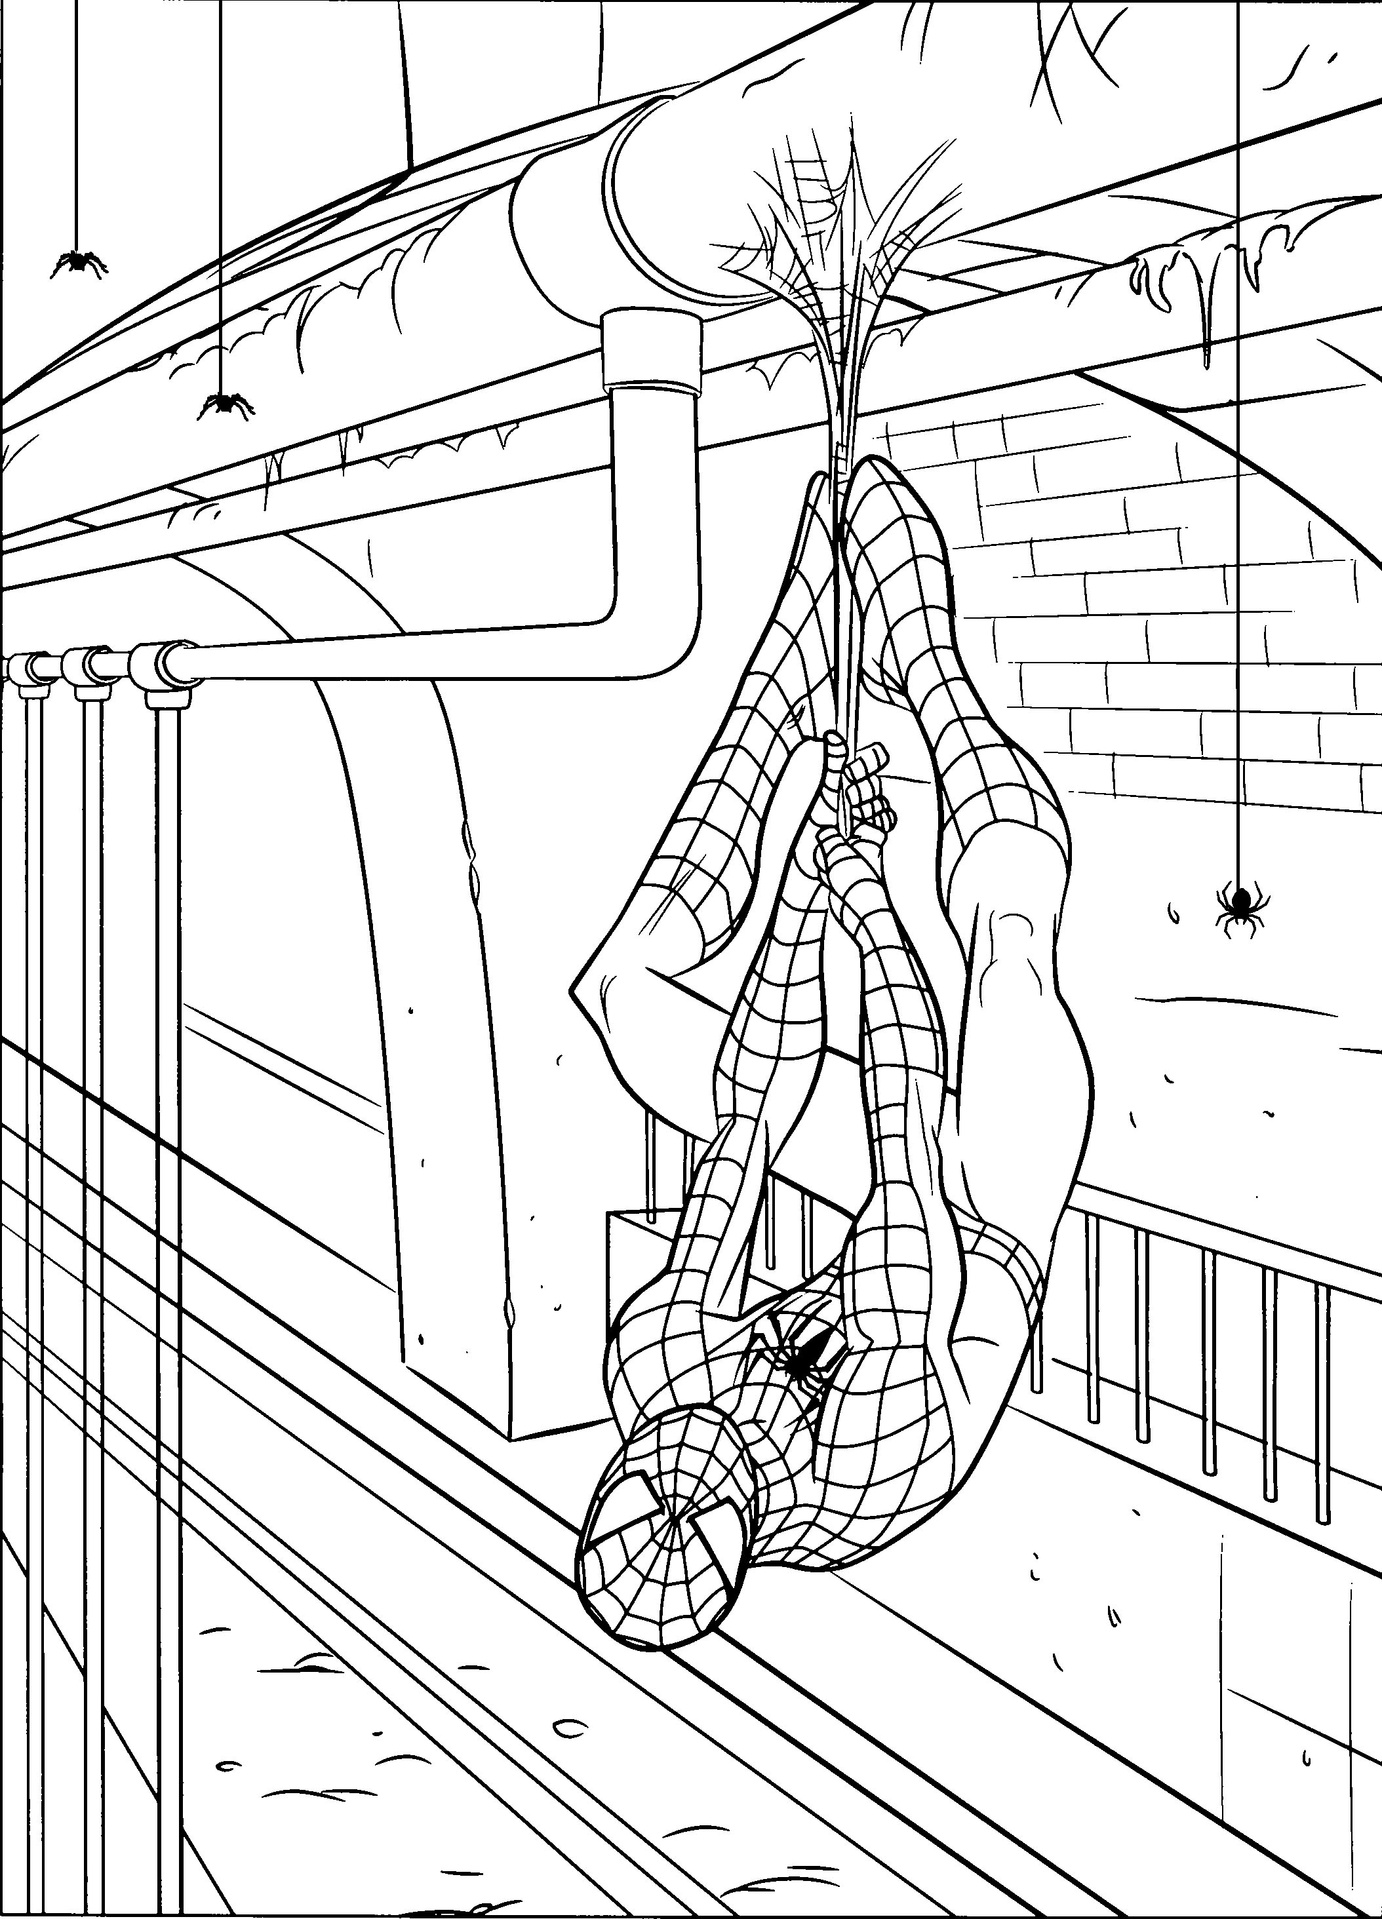 coloring spiderman spiderman coloring page download for free print coloring spiderman